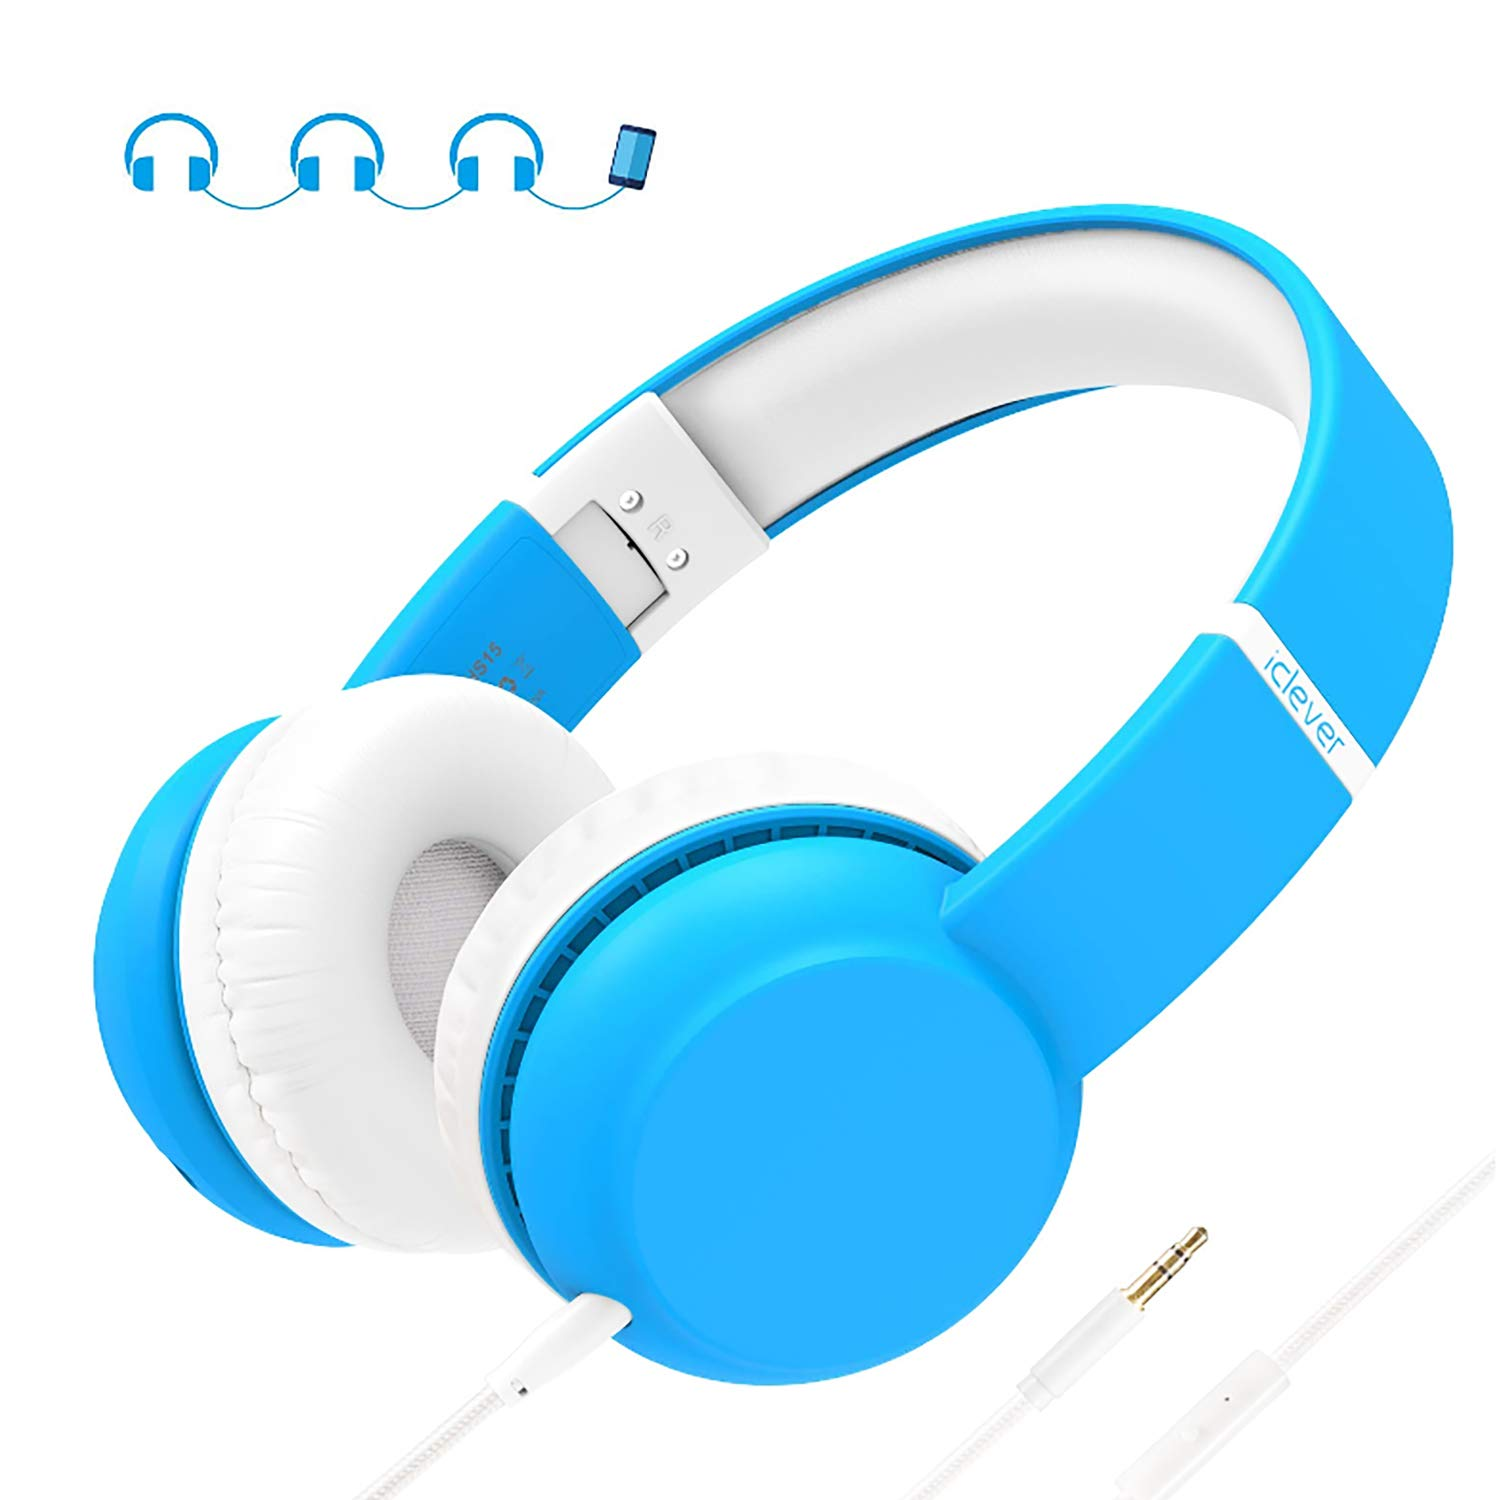 iClever HS15 Kids Headphones - Wired Headphones for Kids Stereo Sound Adjustable Metal Headband Microphone Foldable Tangle-Free Wires 94dB Volume Limiting - Childrens Headphones Over Ear, Blue, Small by iClever